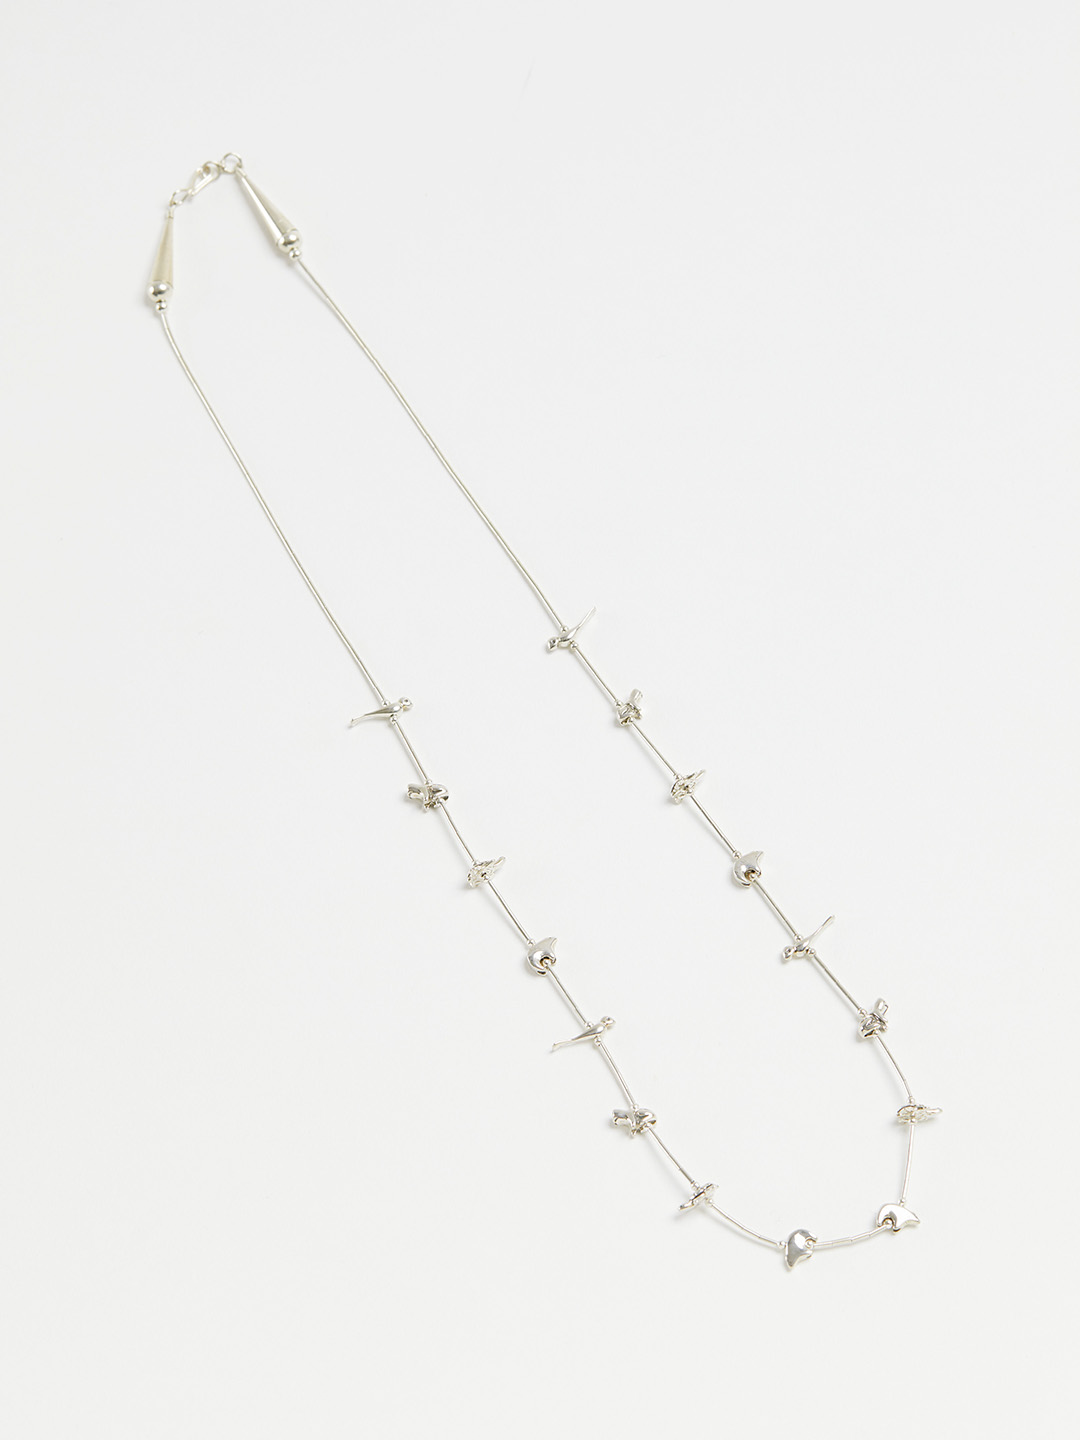 Animal Fetish Necklace - 67cm Silver